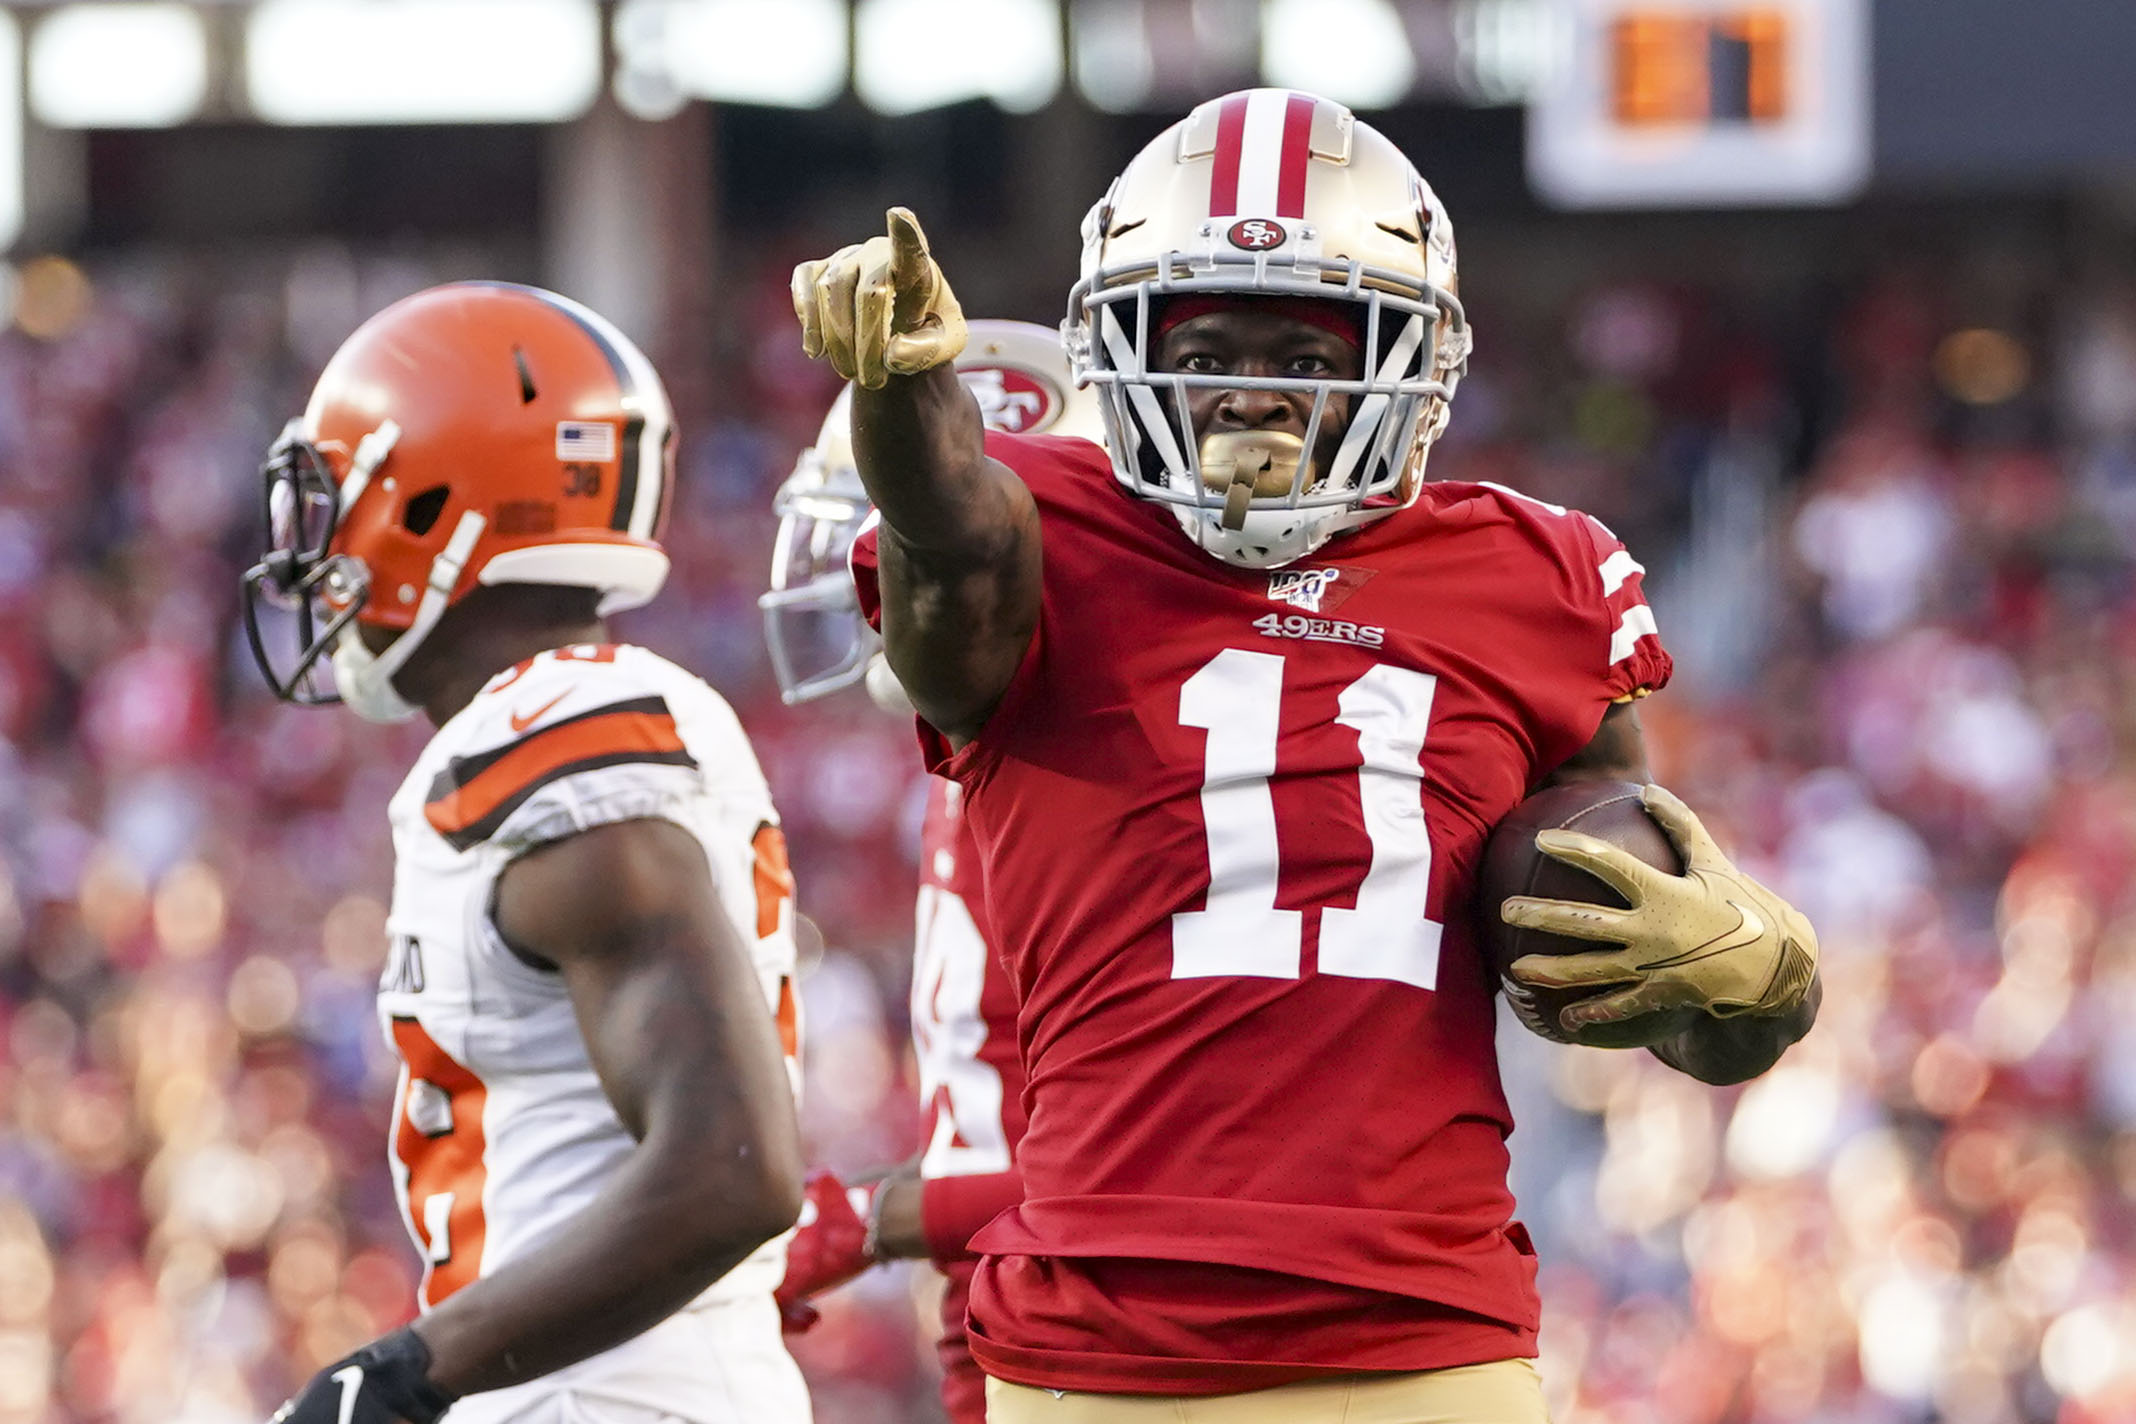 NFL: Cleveland Browns at San Francisco 49ers